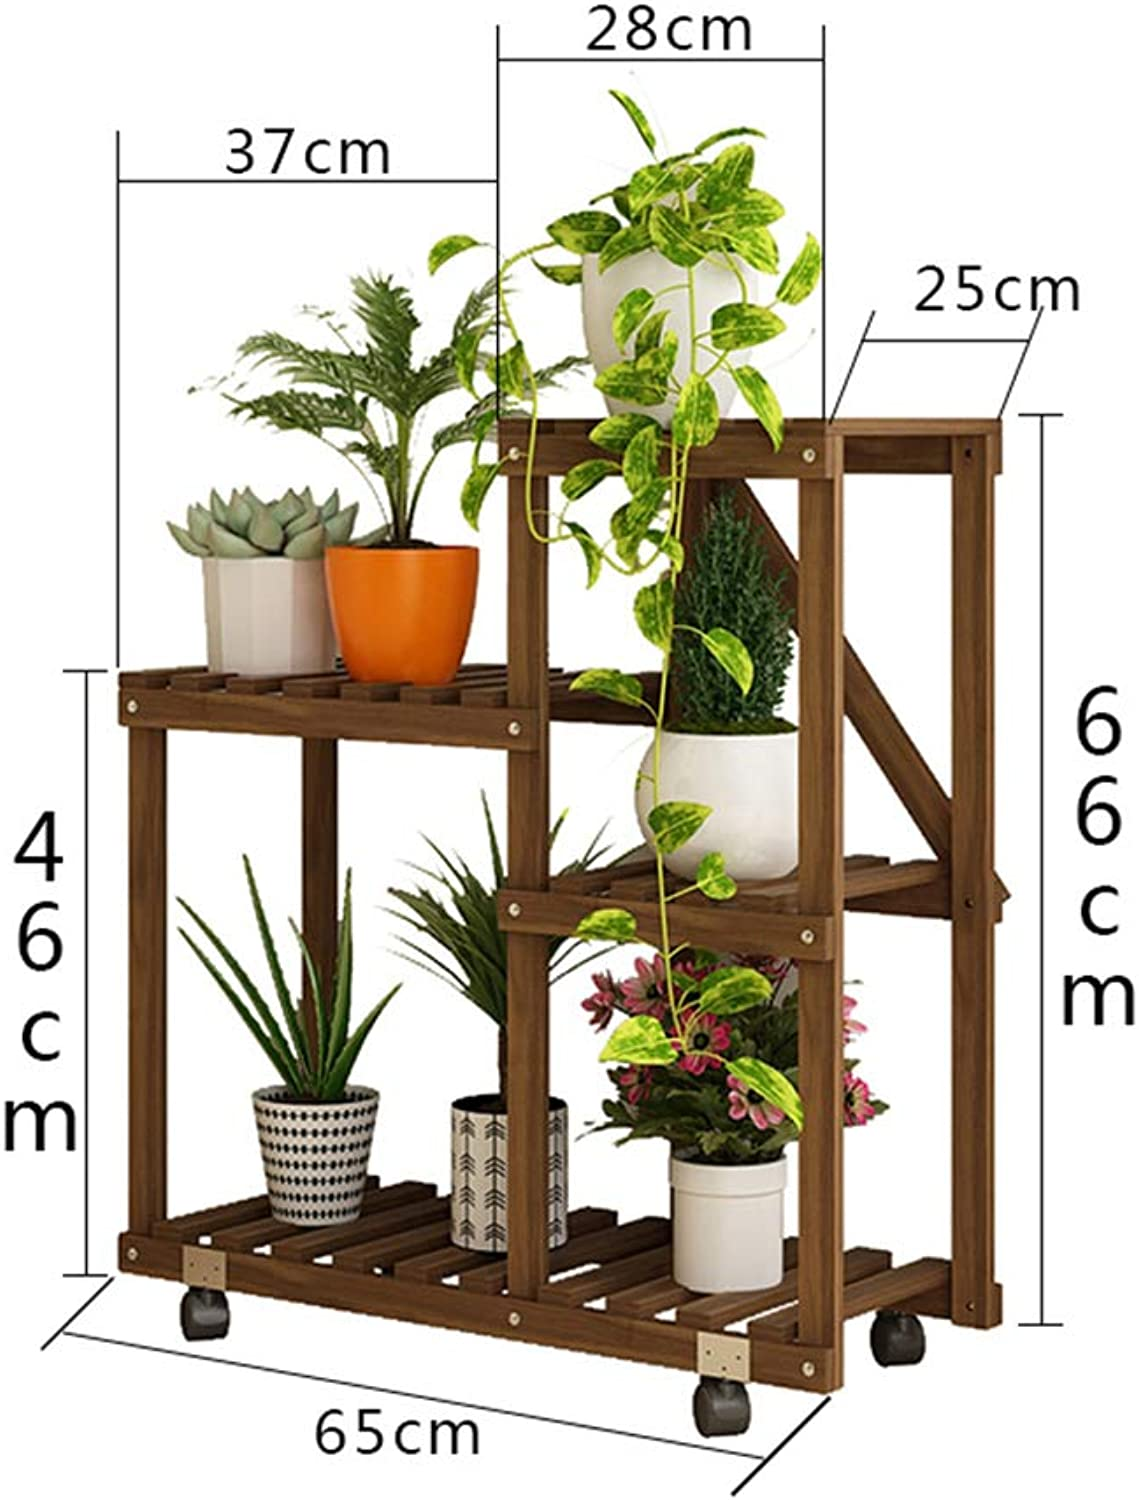 Flower Stand Plant Shelf Multi-Layer Wood Shelf Bonsai Display Stand Indoor Outdoor Garden Garden Patio Balcony Multi-Function Storage Shelf Bookcase with Hollow Frame (color   A)